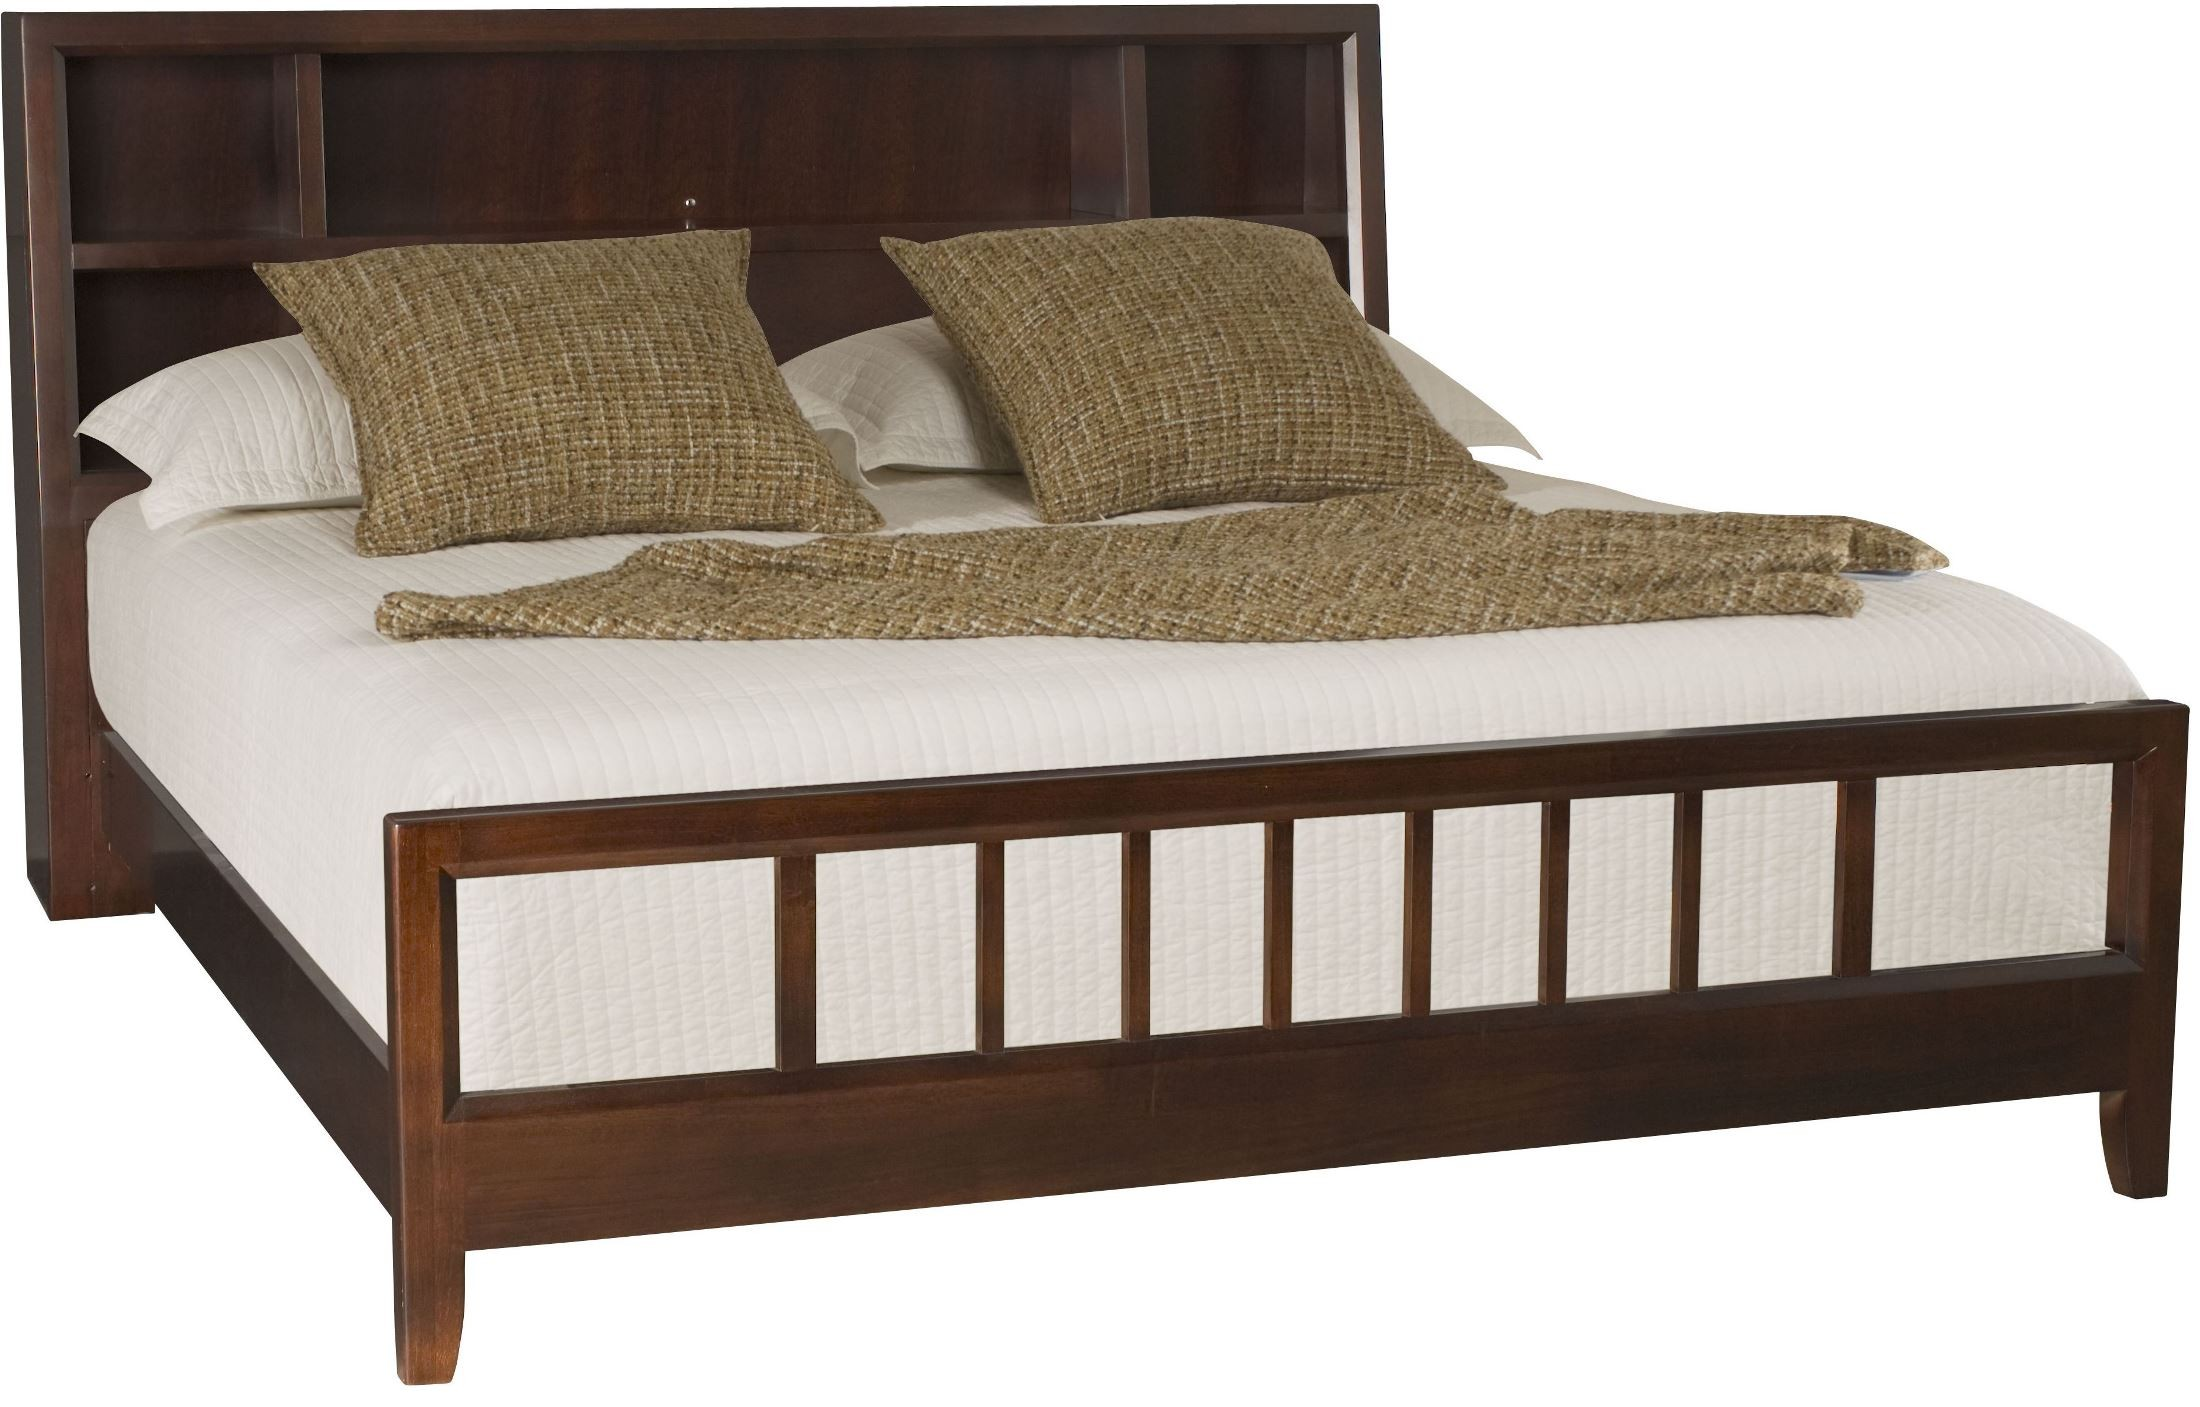 Tribecca Root Beer King Bookcase Bed from American Drew